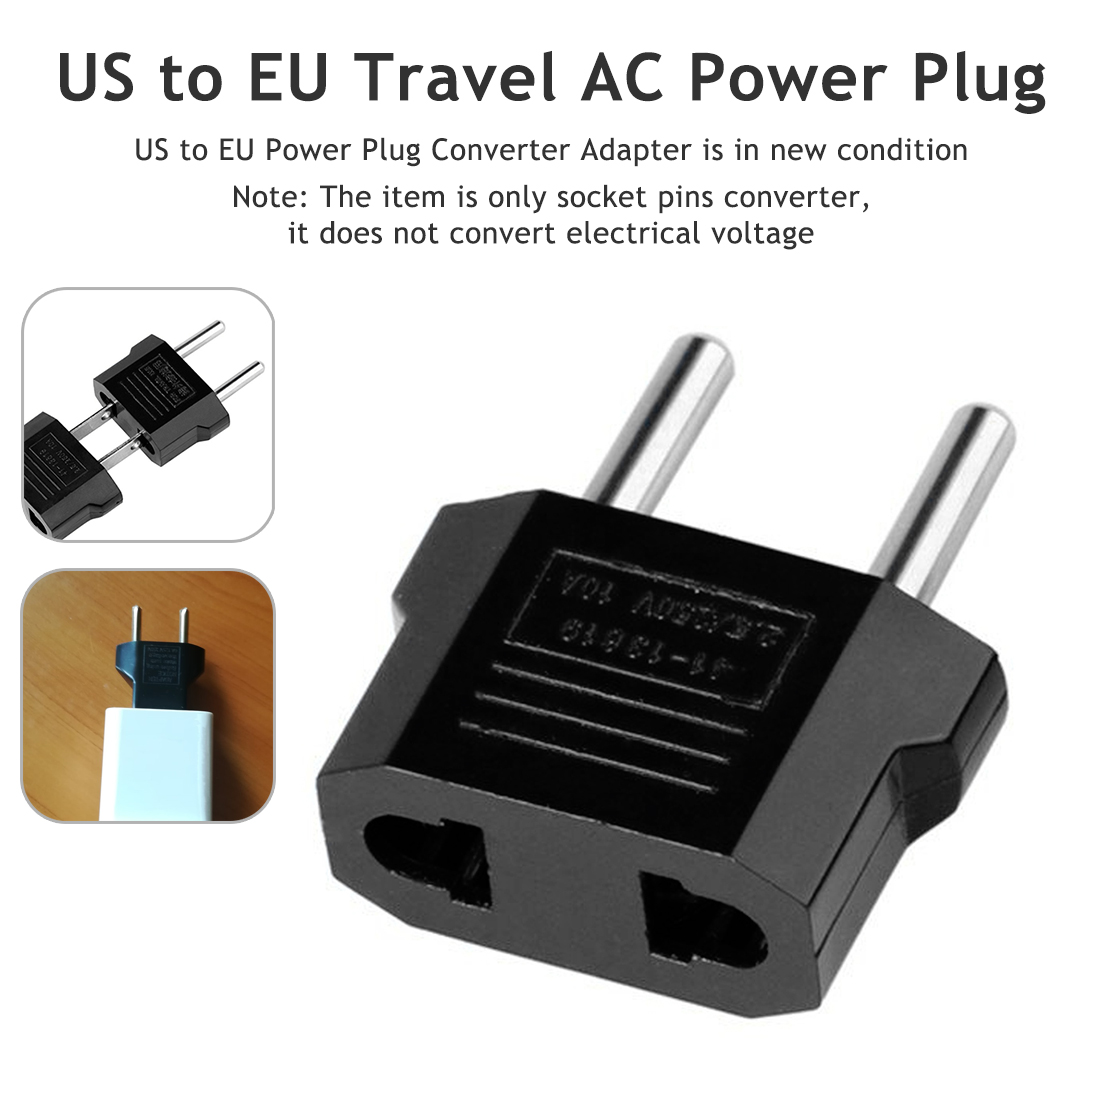 European EU Plug Adapter US American To Europe Euro Travel Power Adapter Plug Outlet Converter Socket